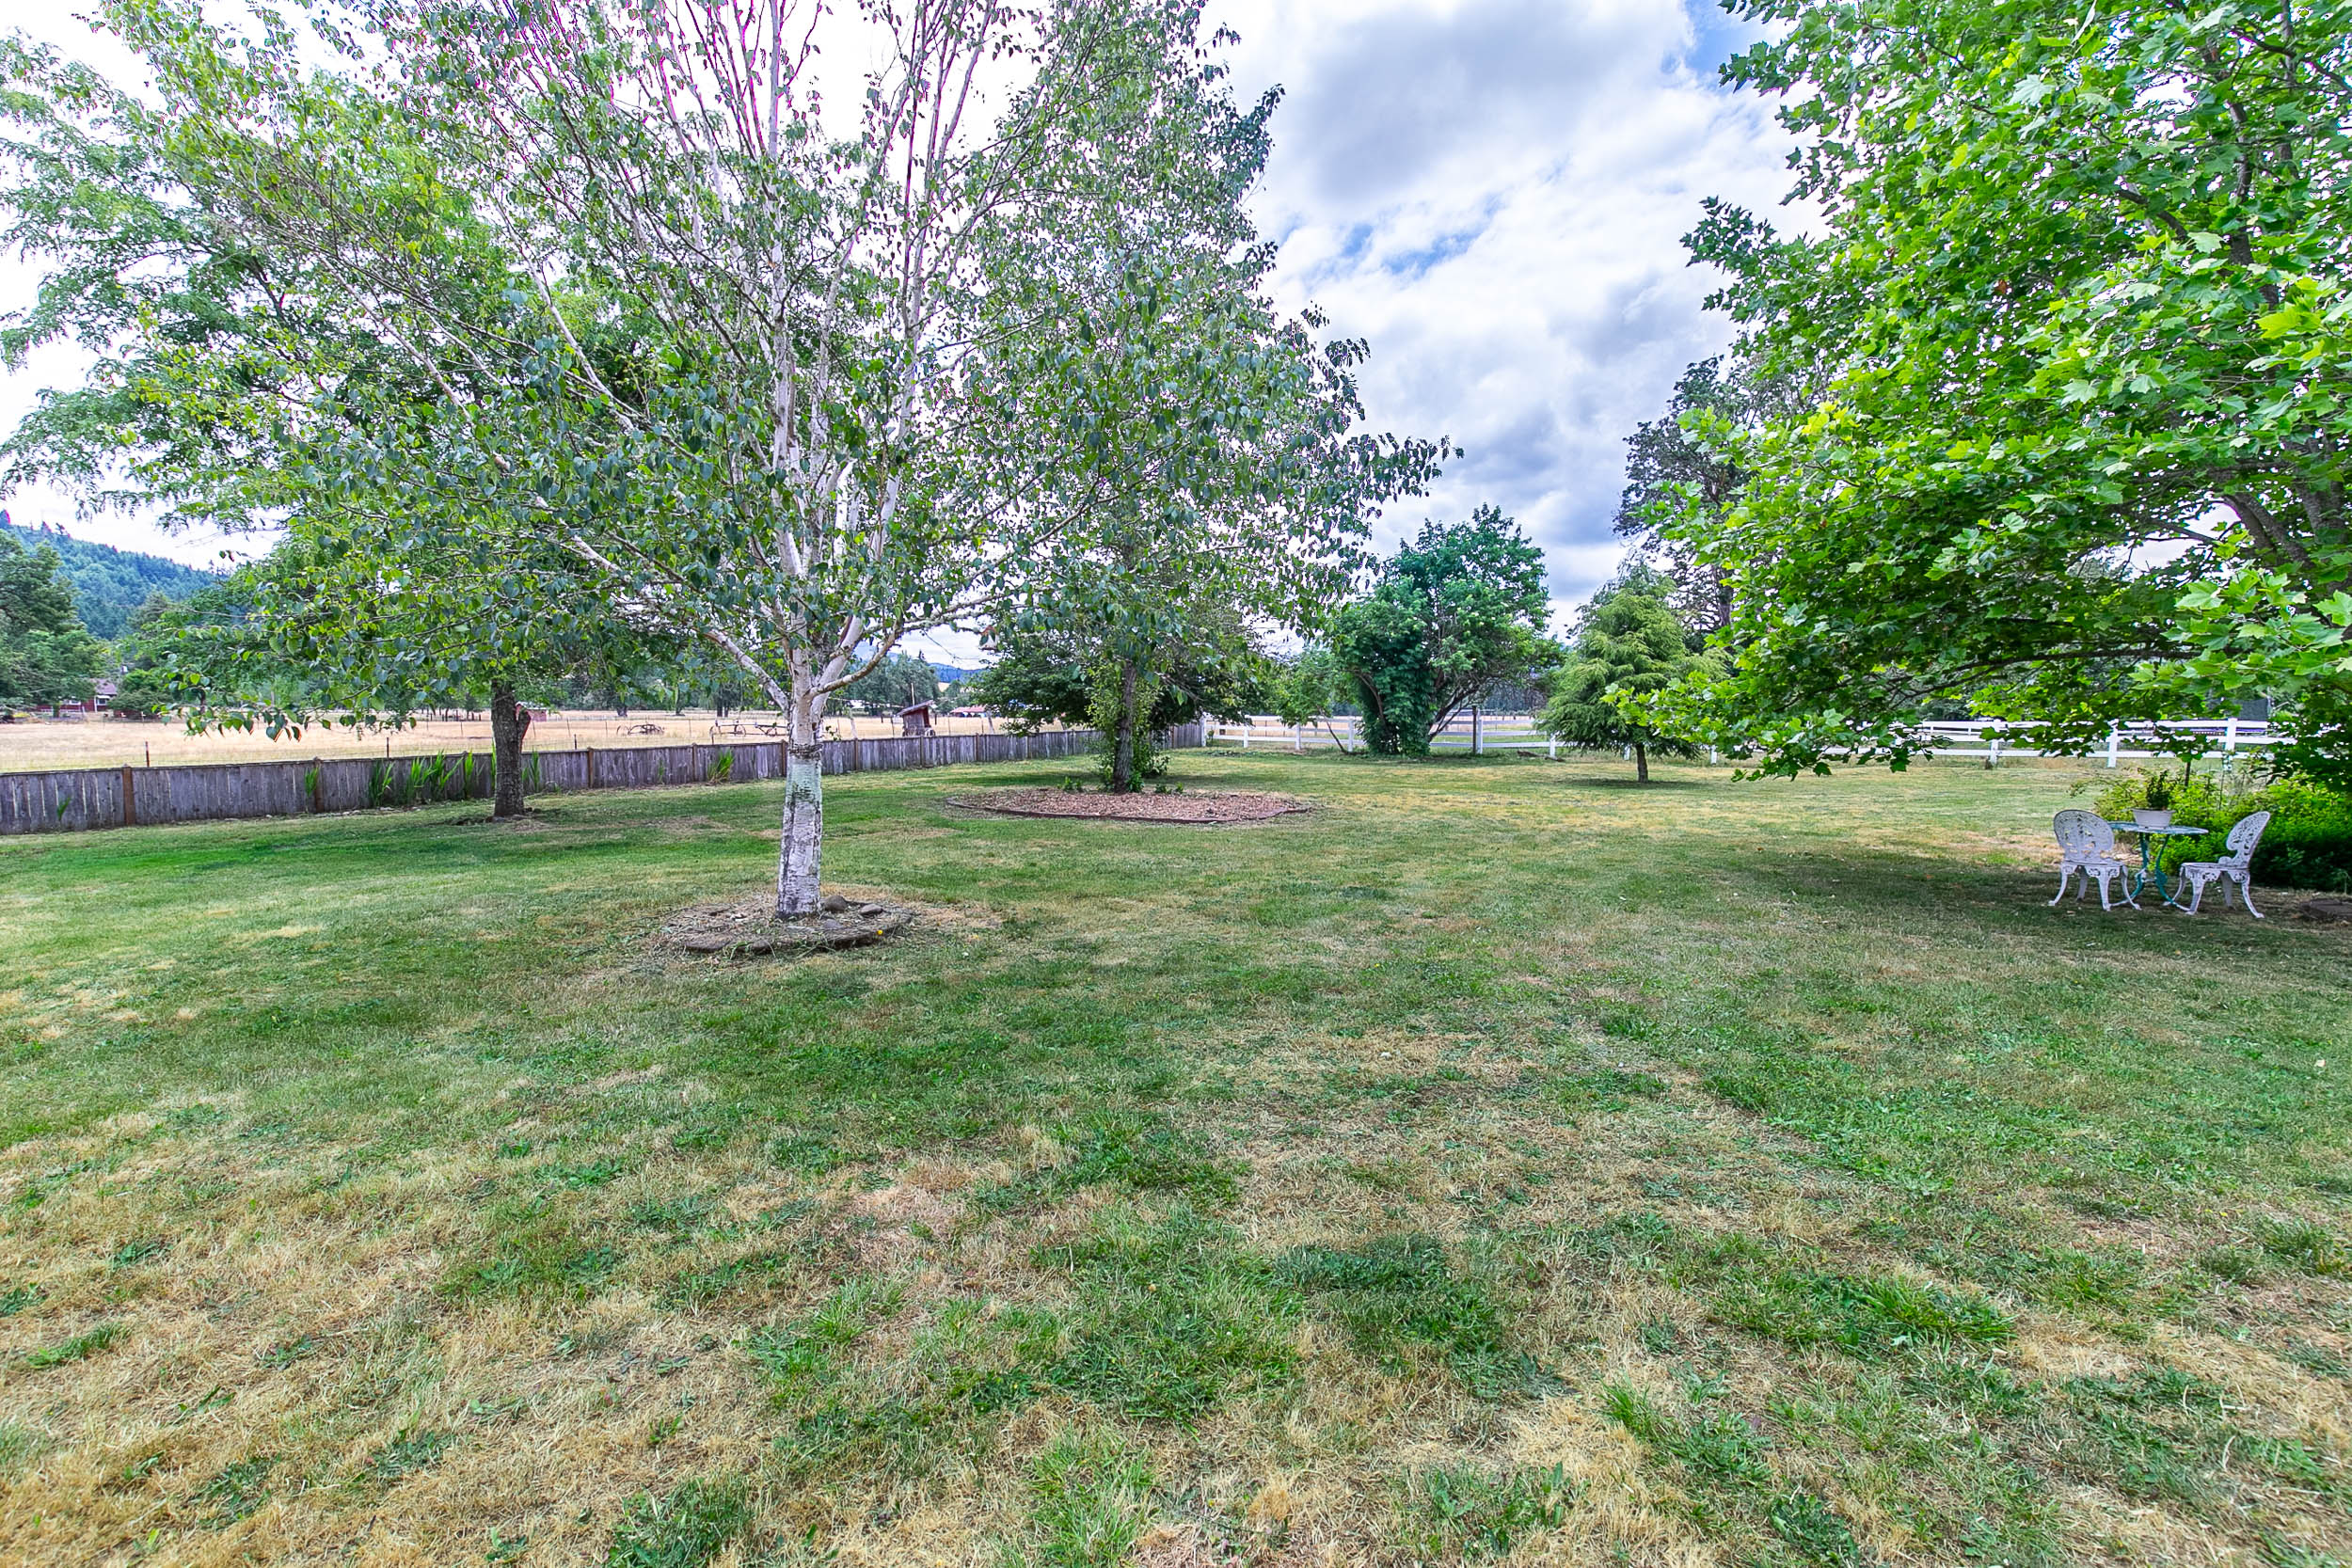 063_78376 Meadow Park Dr_MG_4451-HDR.jpg